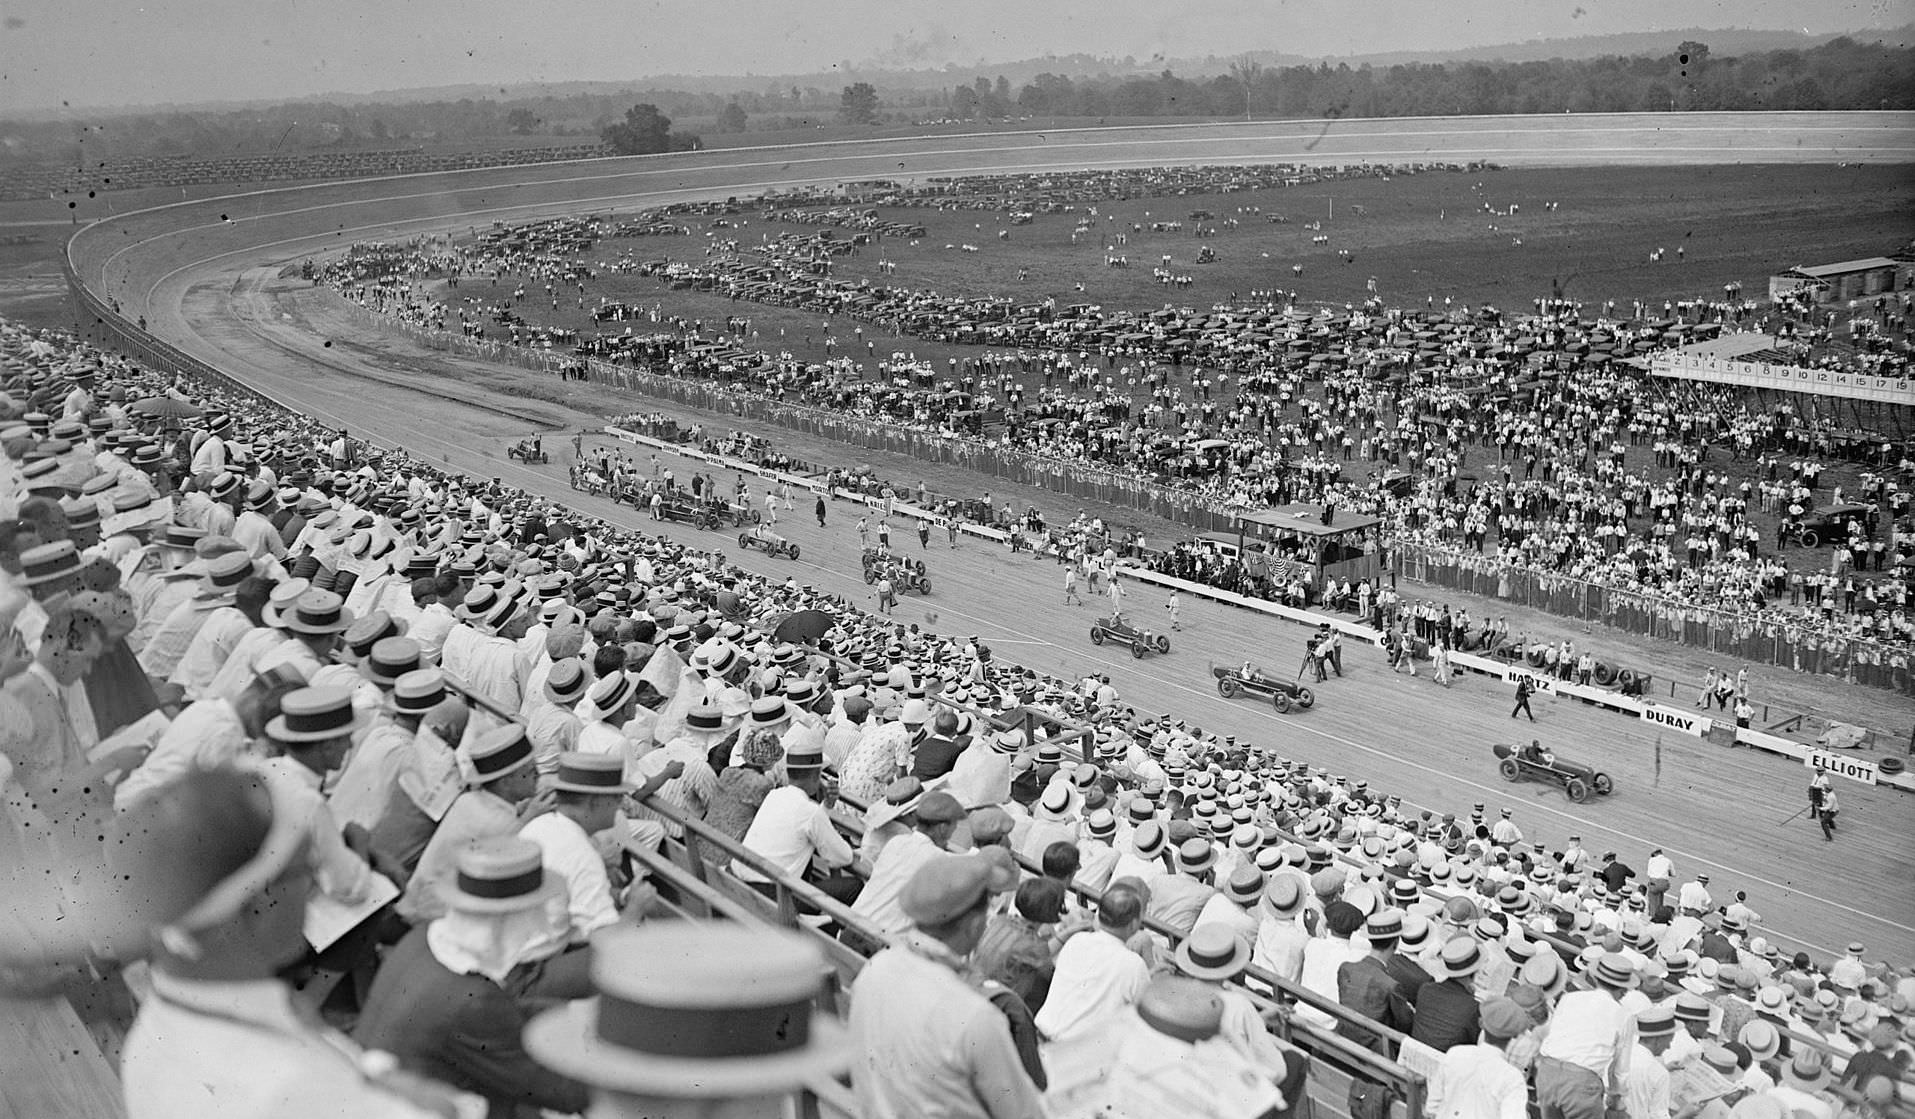 The Baltimore-Washington Board Track Speedway in 1925